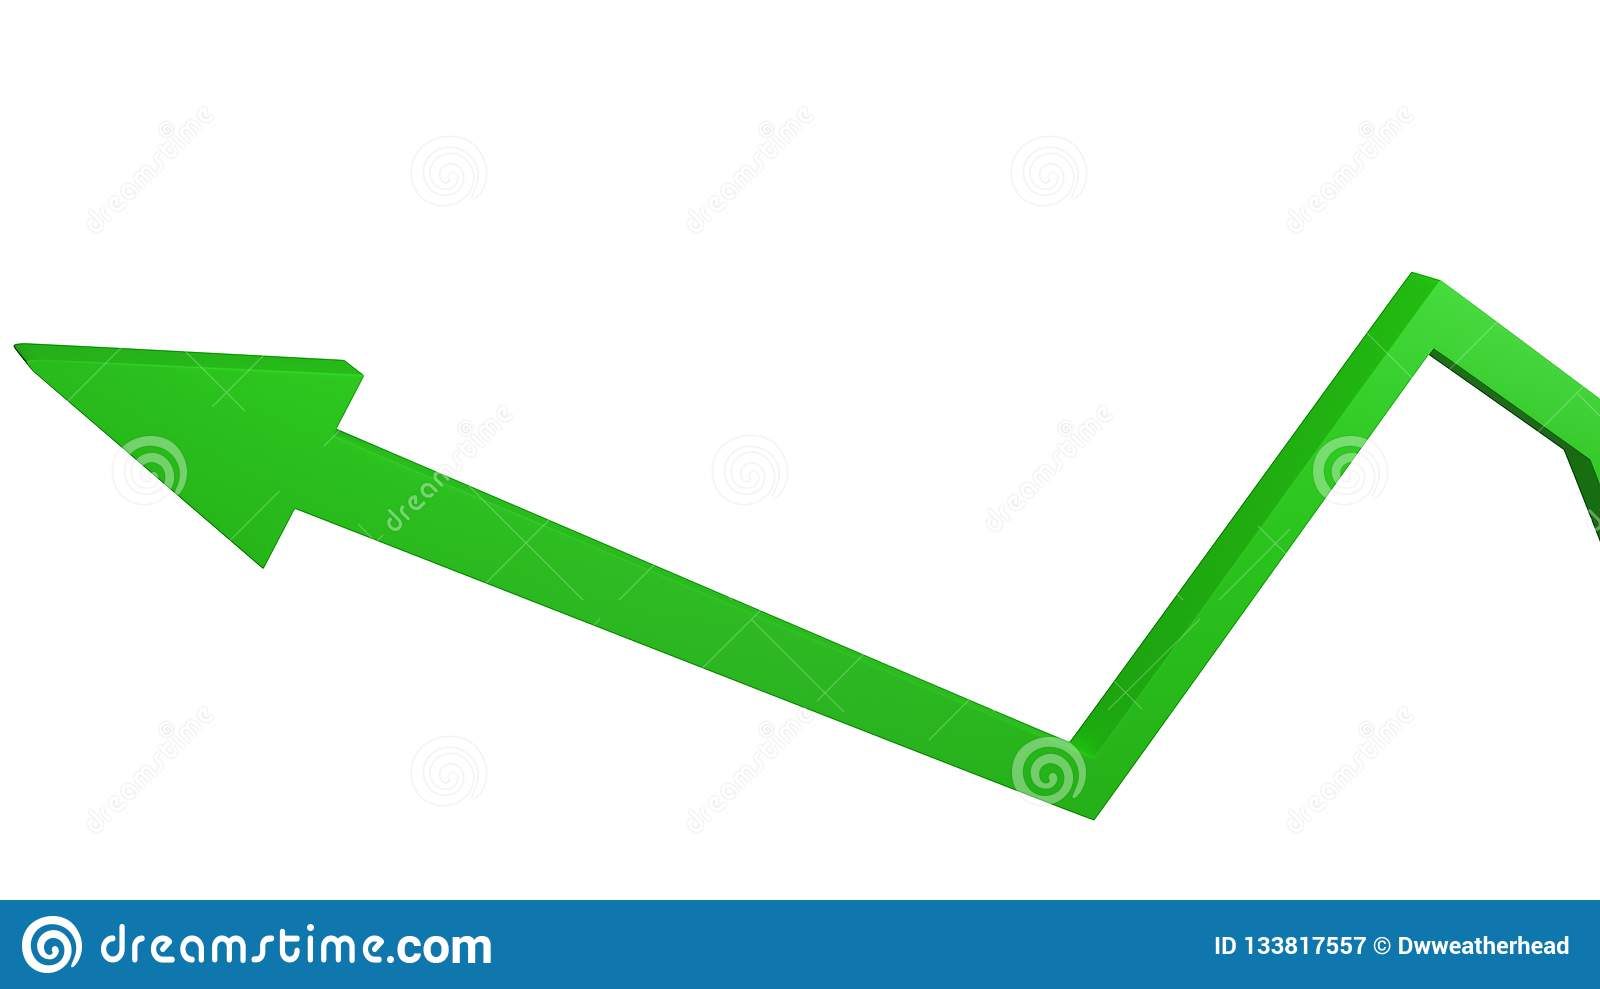 Green arrow representing concept of economic growth and business success isolated on white